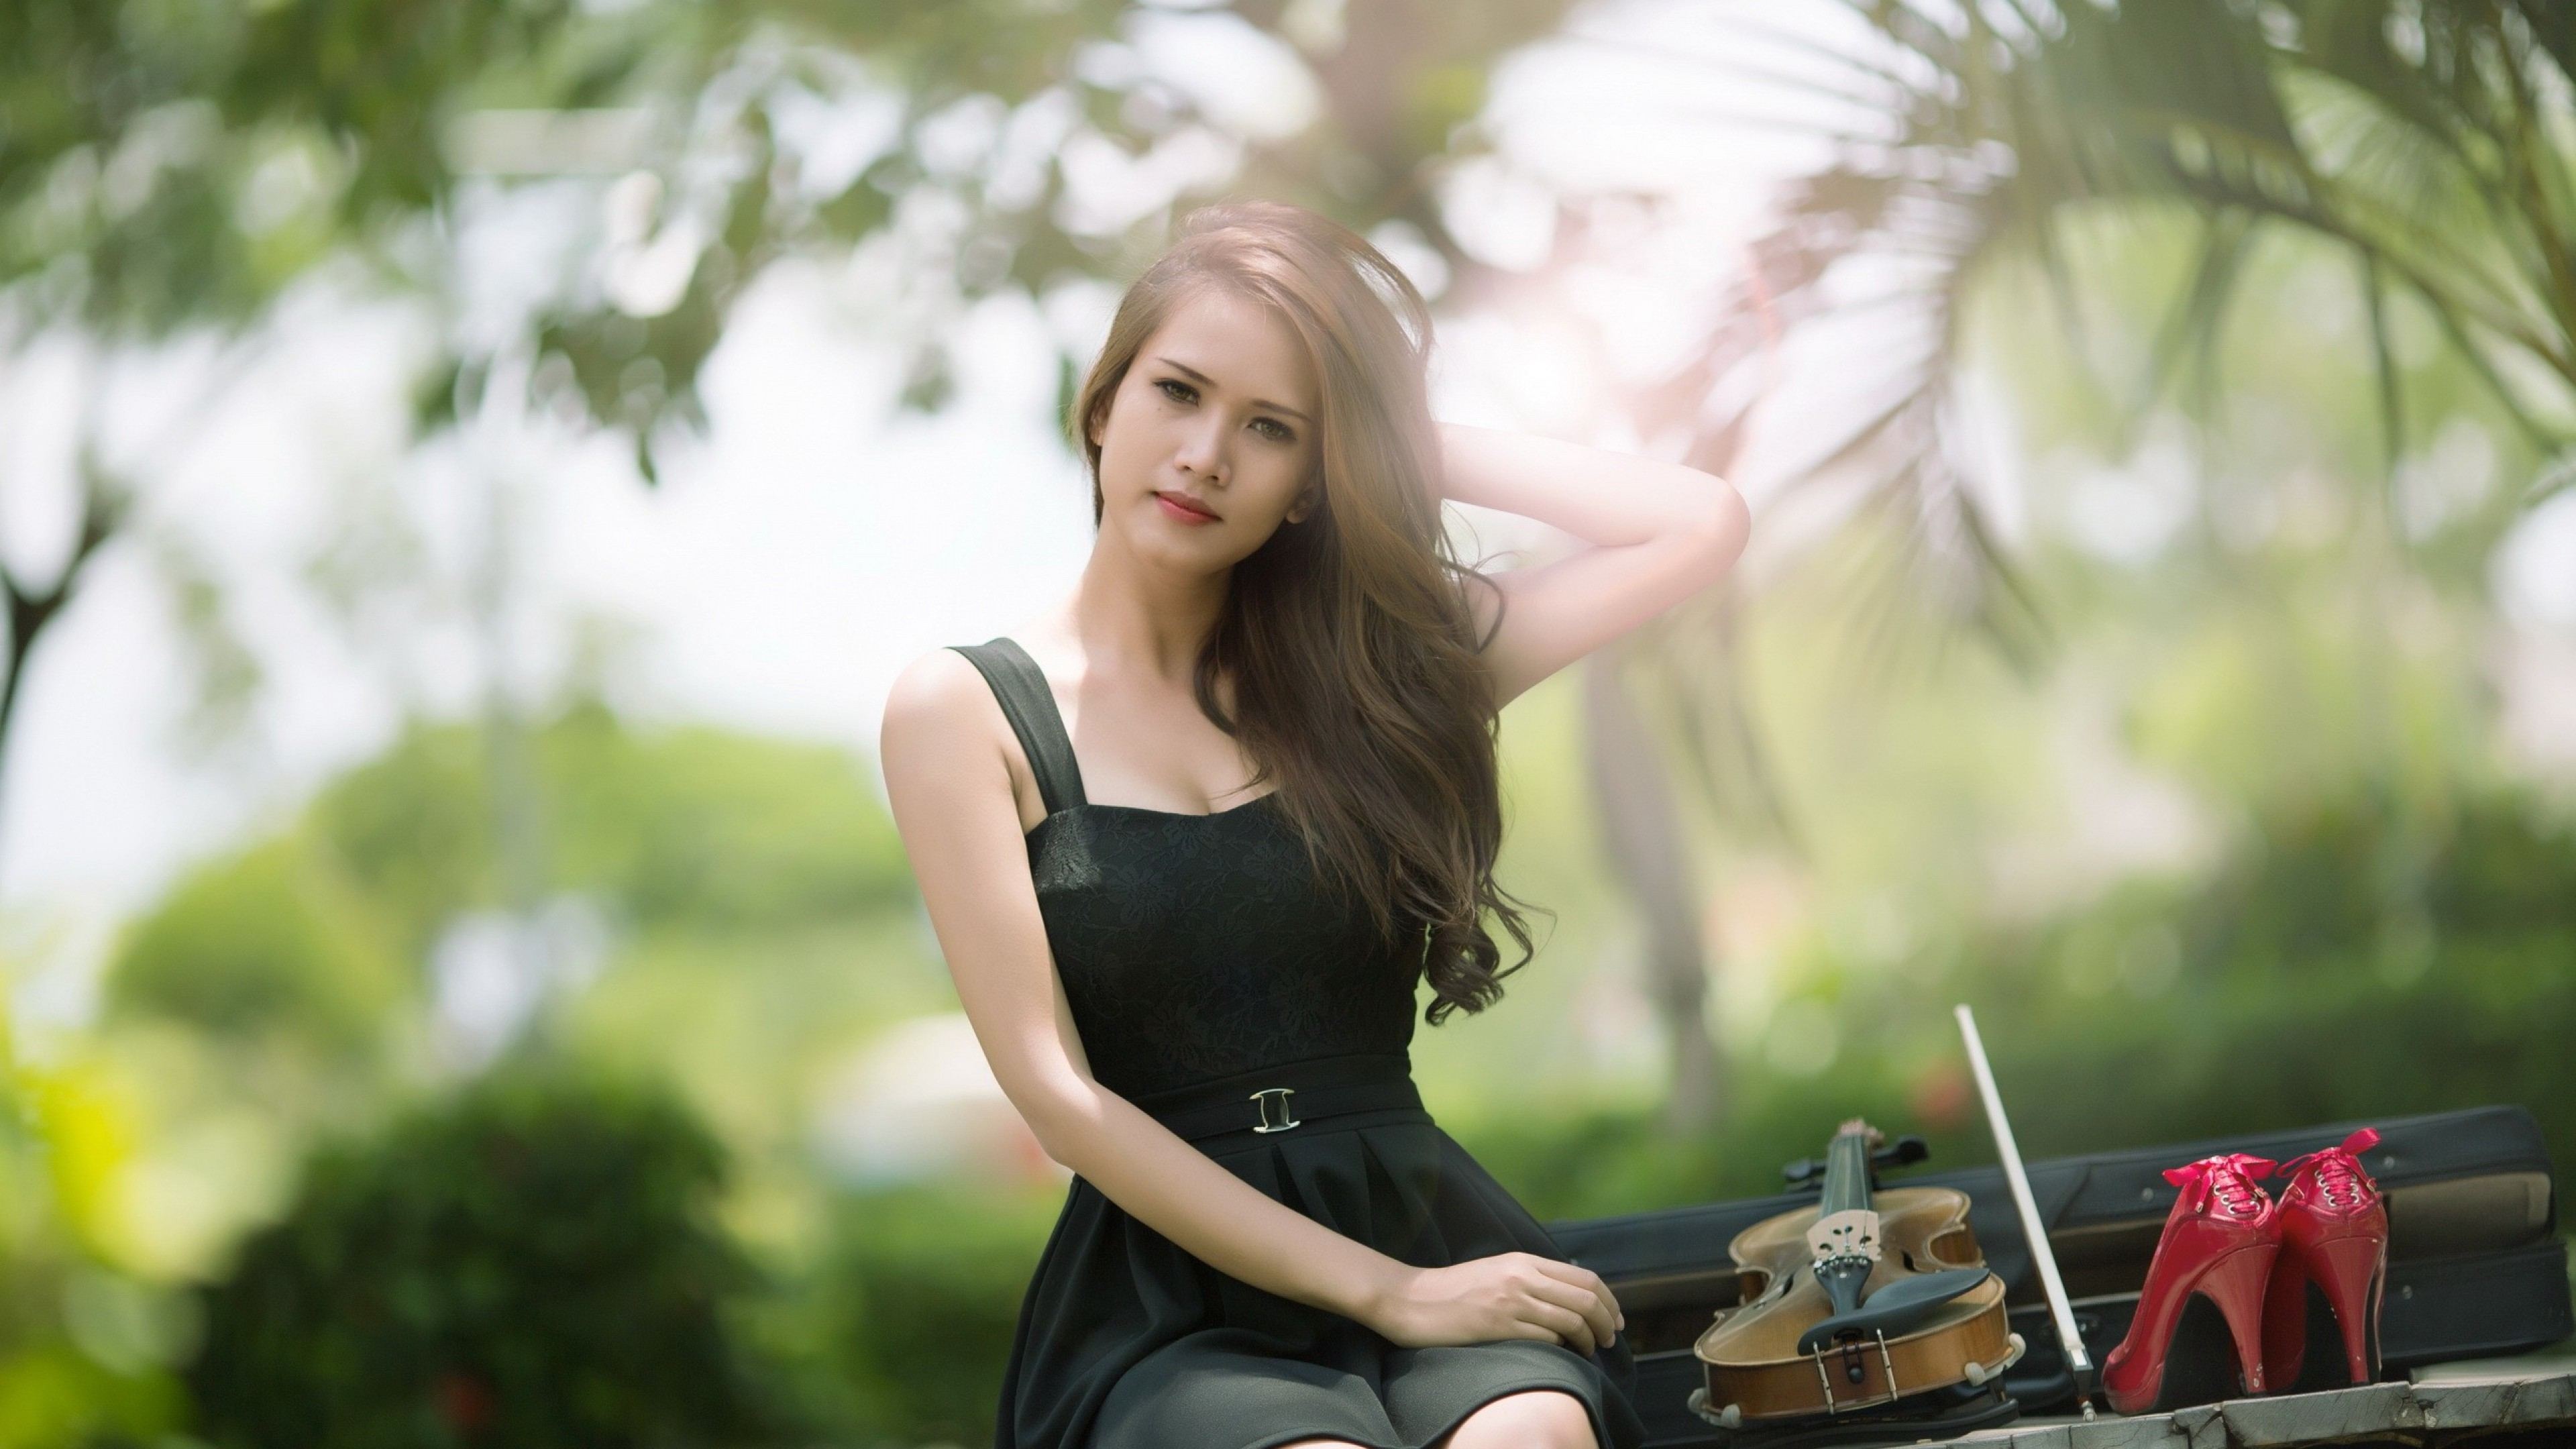 Brunette Girl Violin, Hd Girls, 4K Wallpapers, Images, Backgrounds, Photos And Pictures-6529